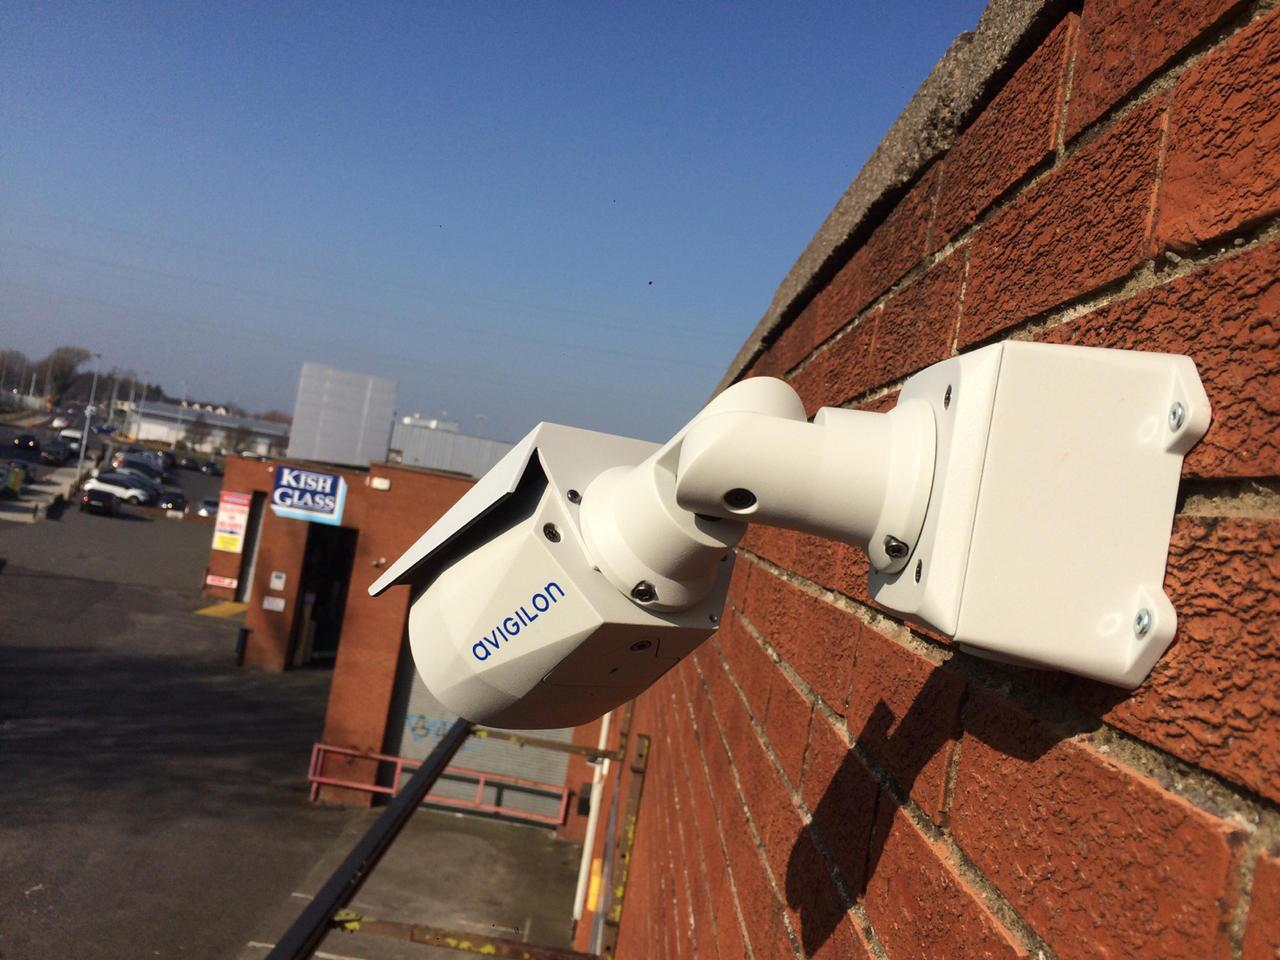 Avigilon H4SL ccctv camera fitted in south Dublin by Usee.ie